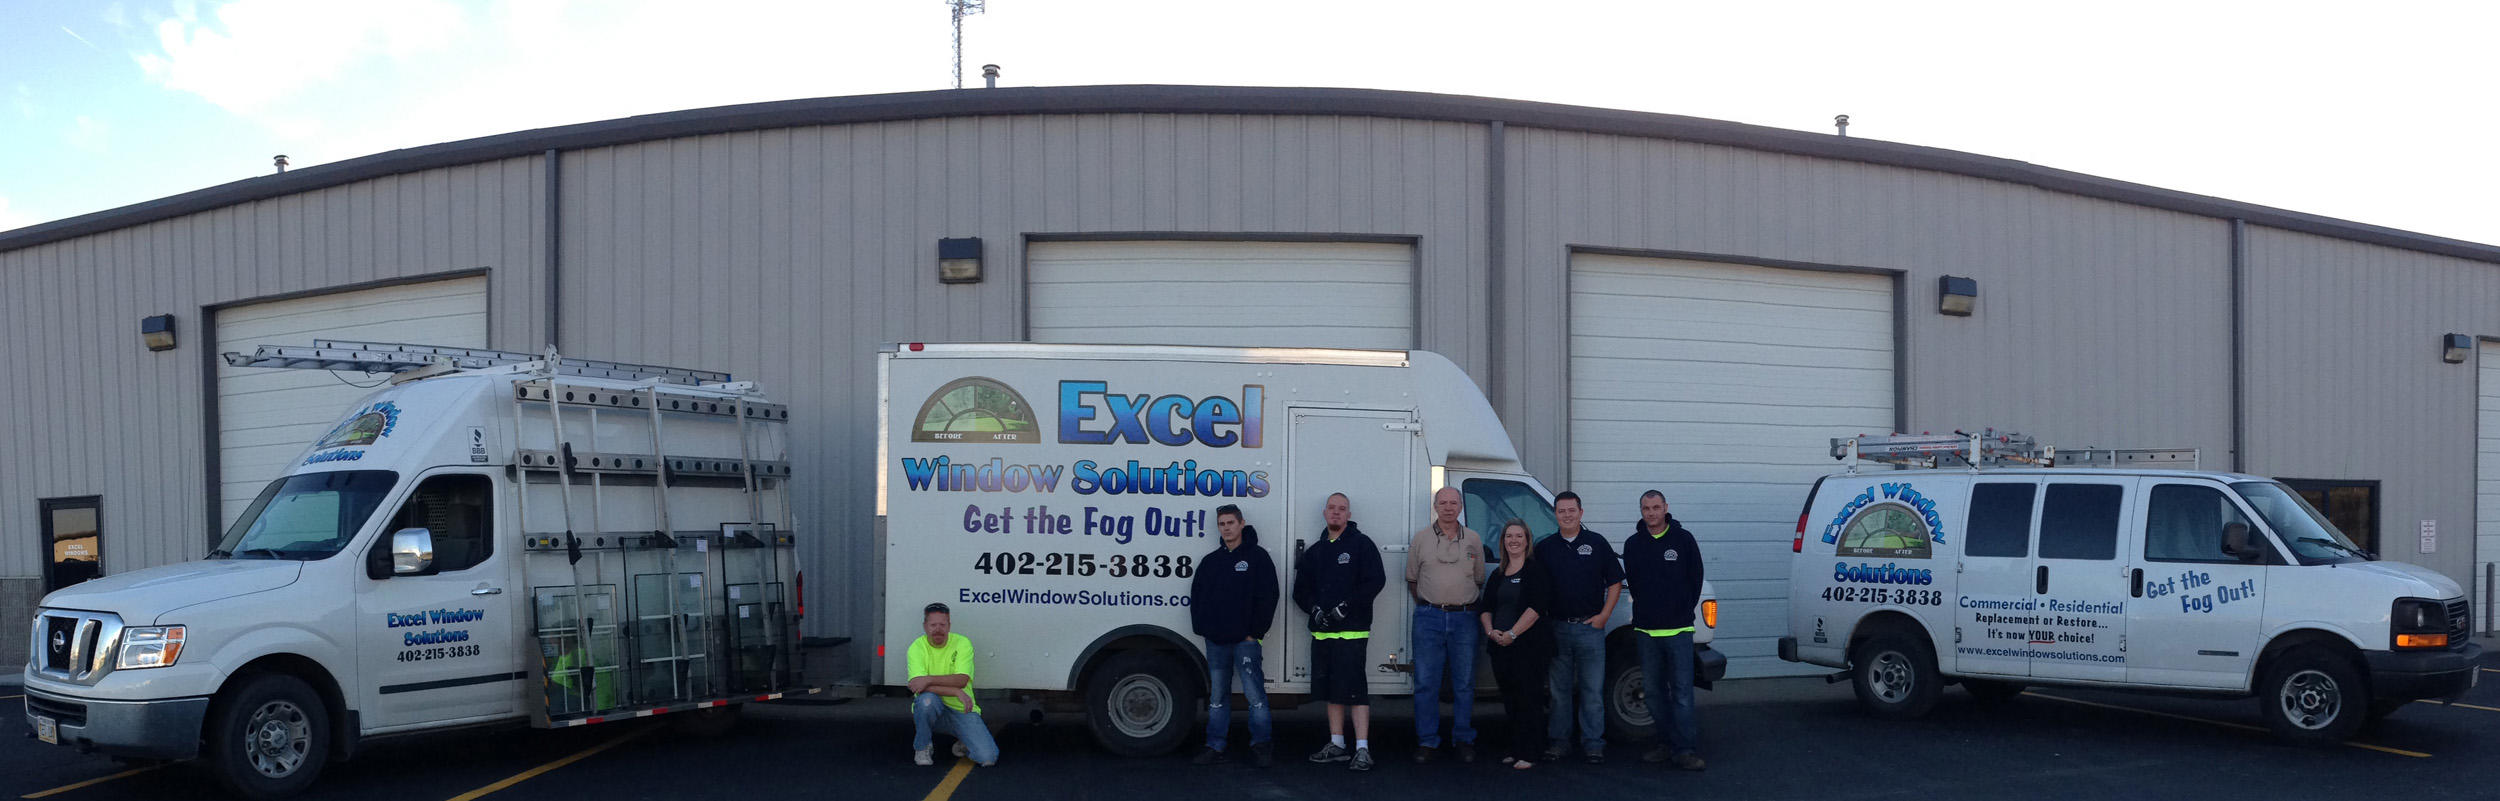 Excel Window Solutions In Omaha Ne 68138